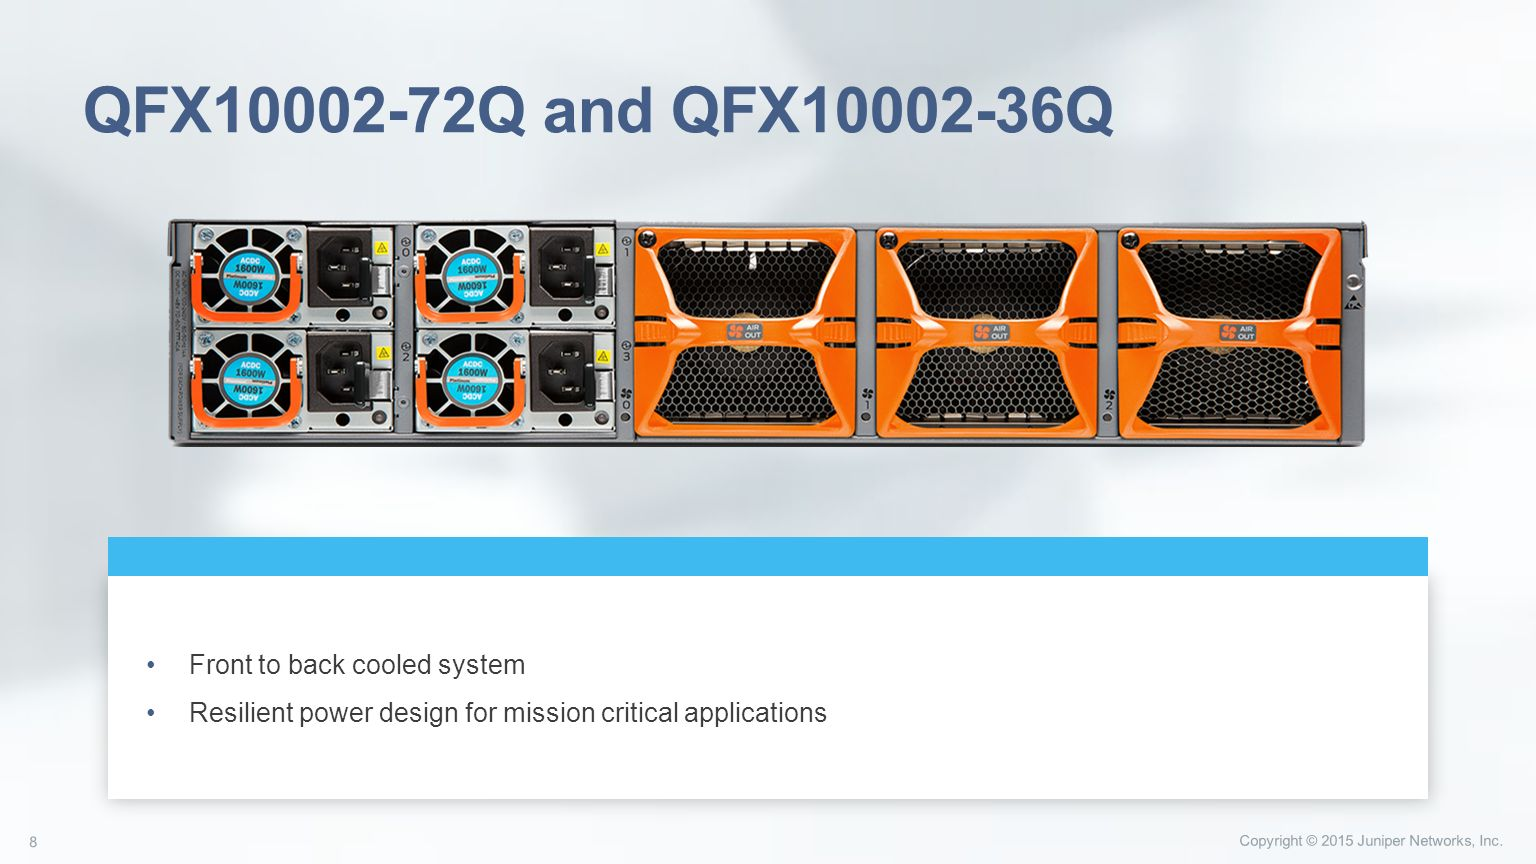 Next Generation Spine & Core Data Center Switches - ppt